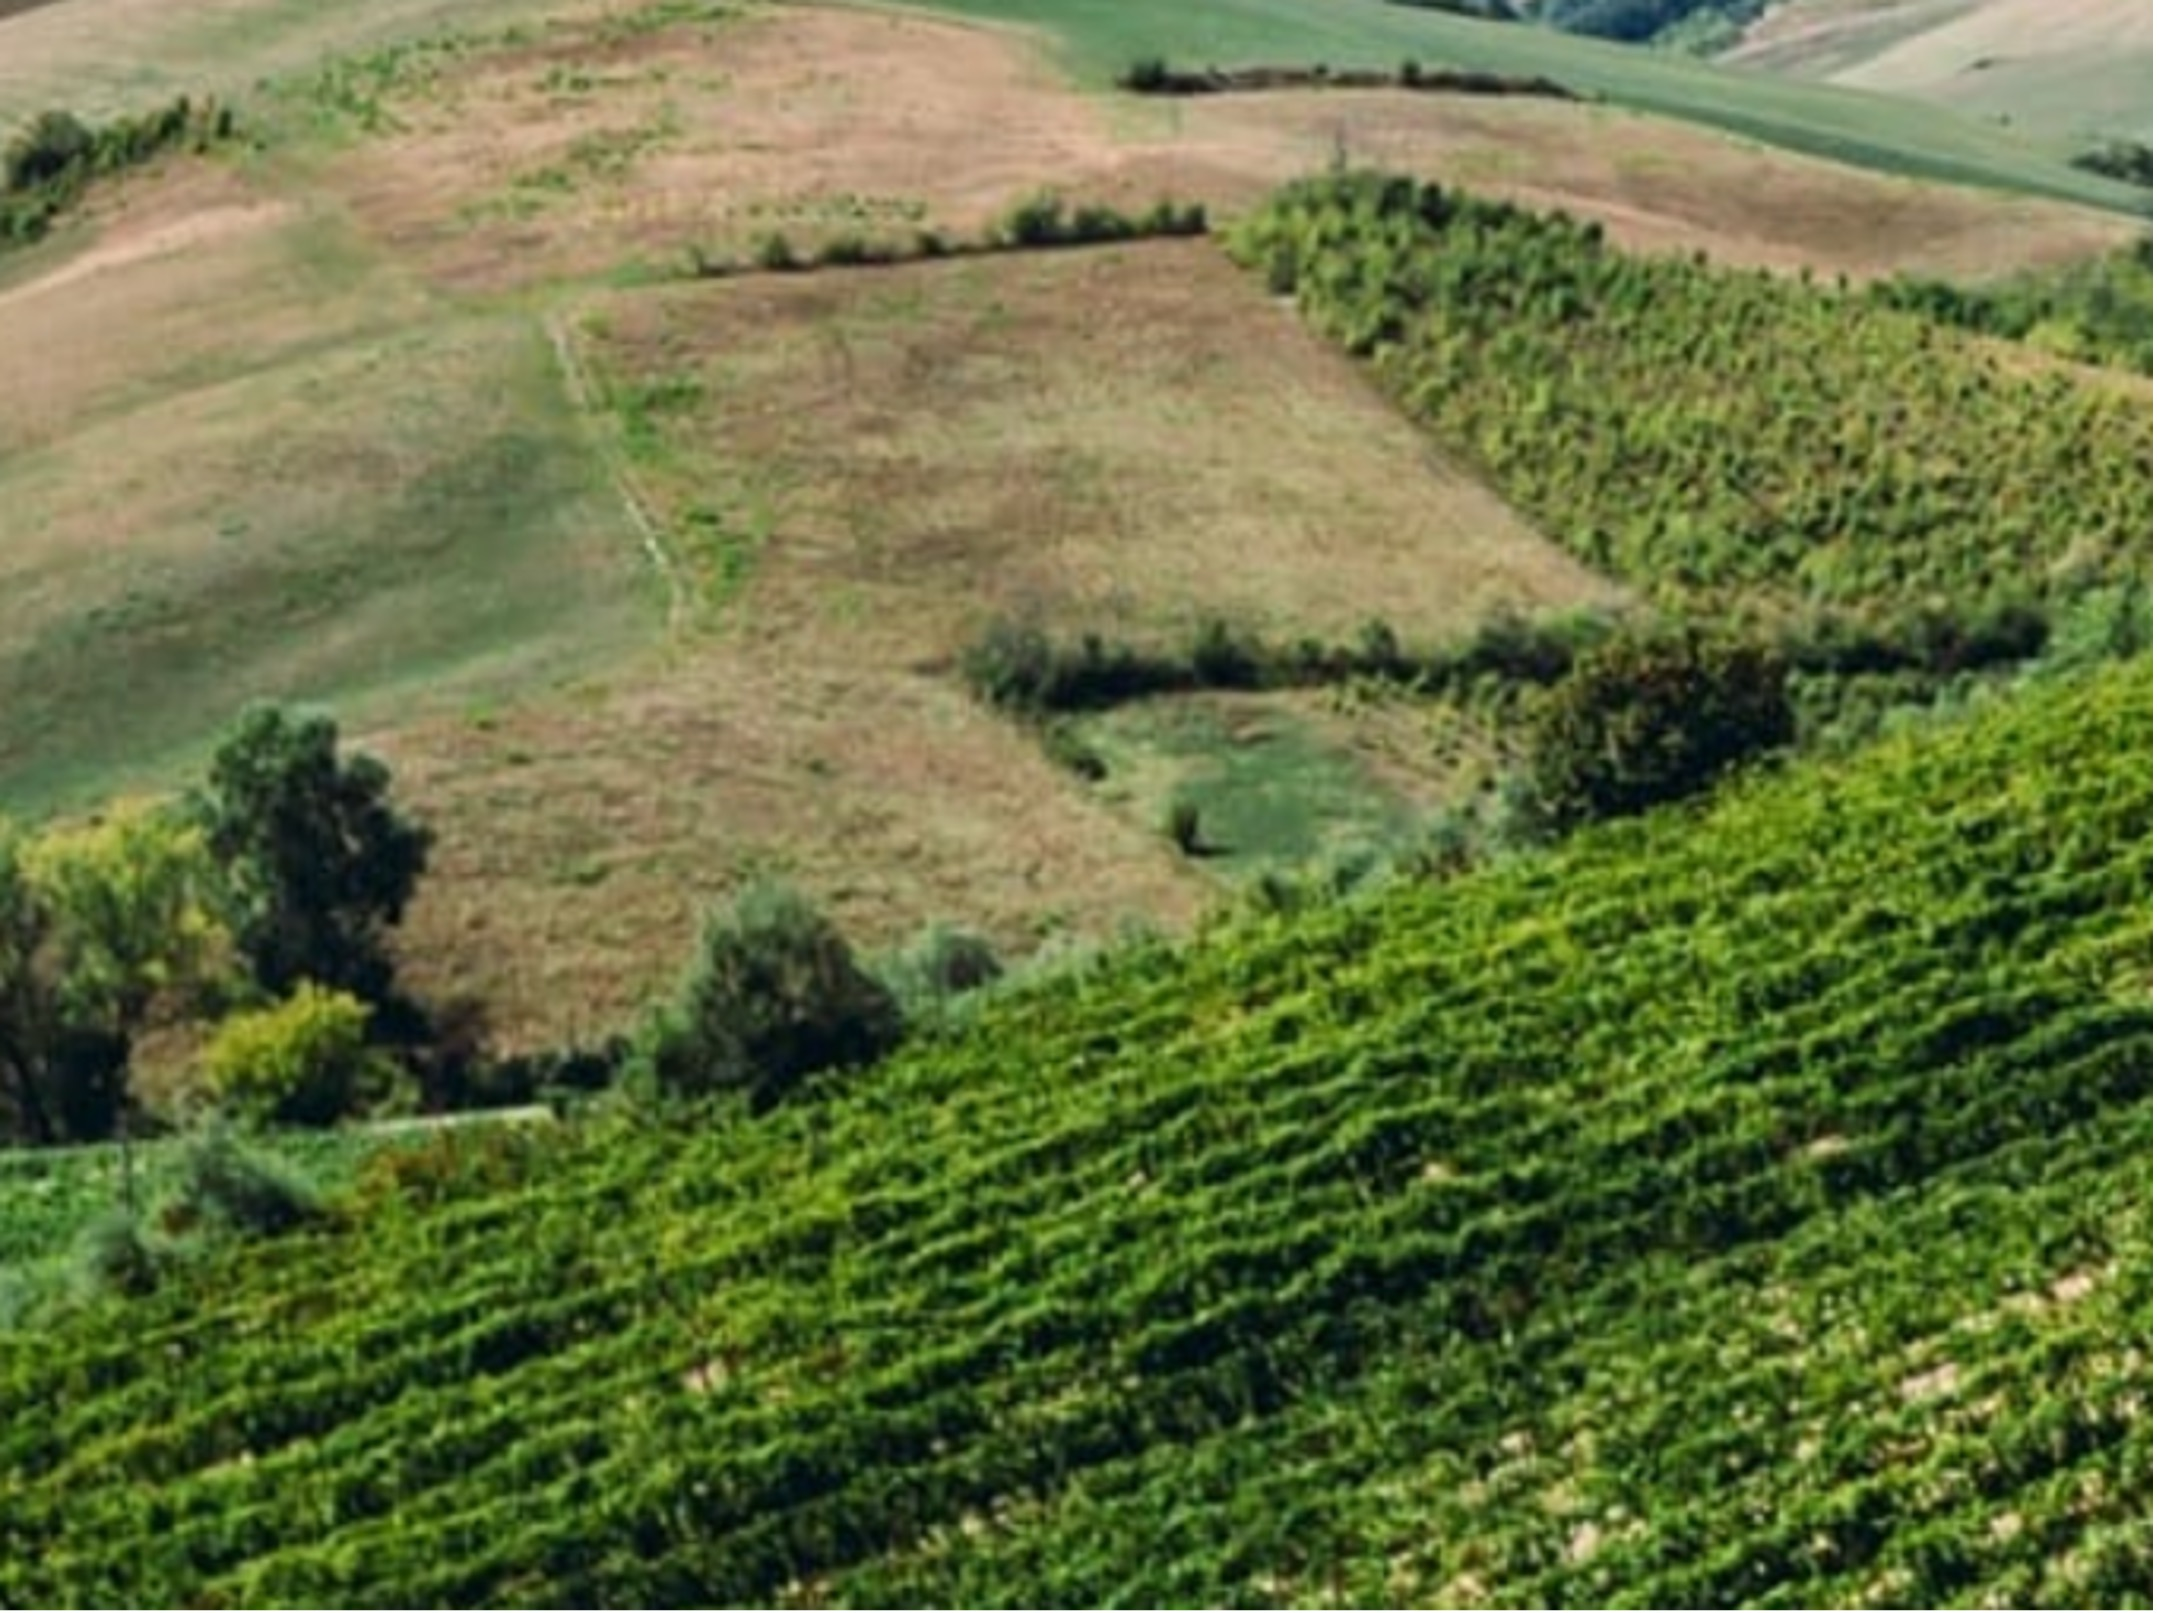 Grechetto Gentile growing on the Colli. Photo by Terre Cevico